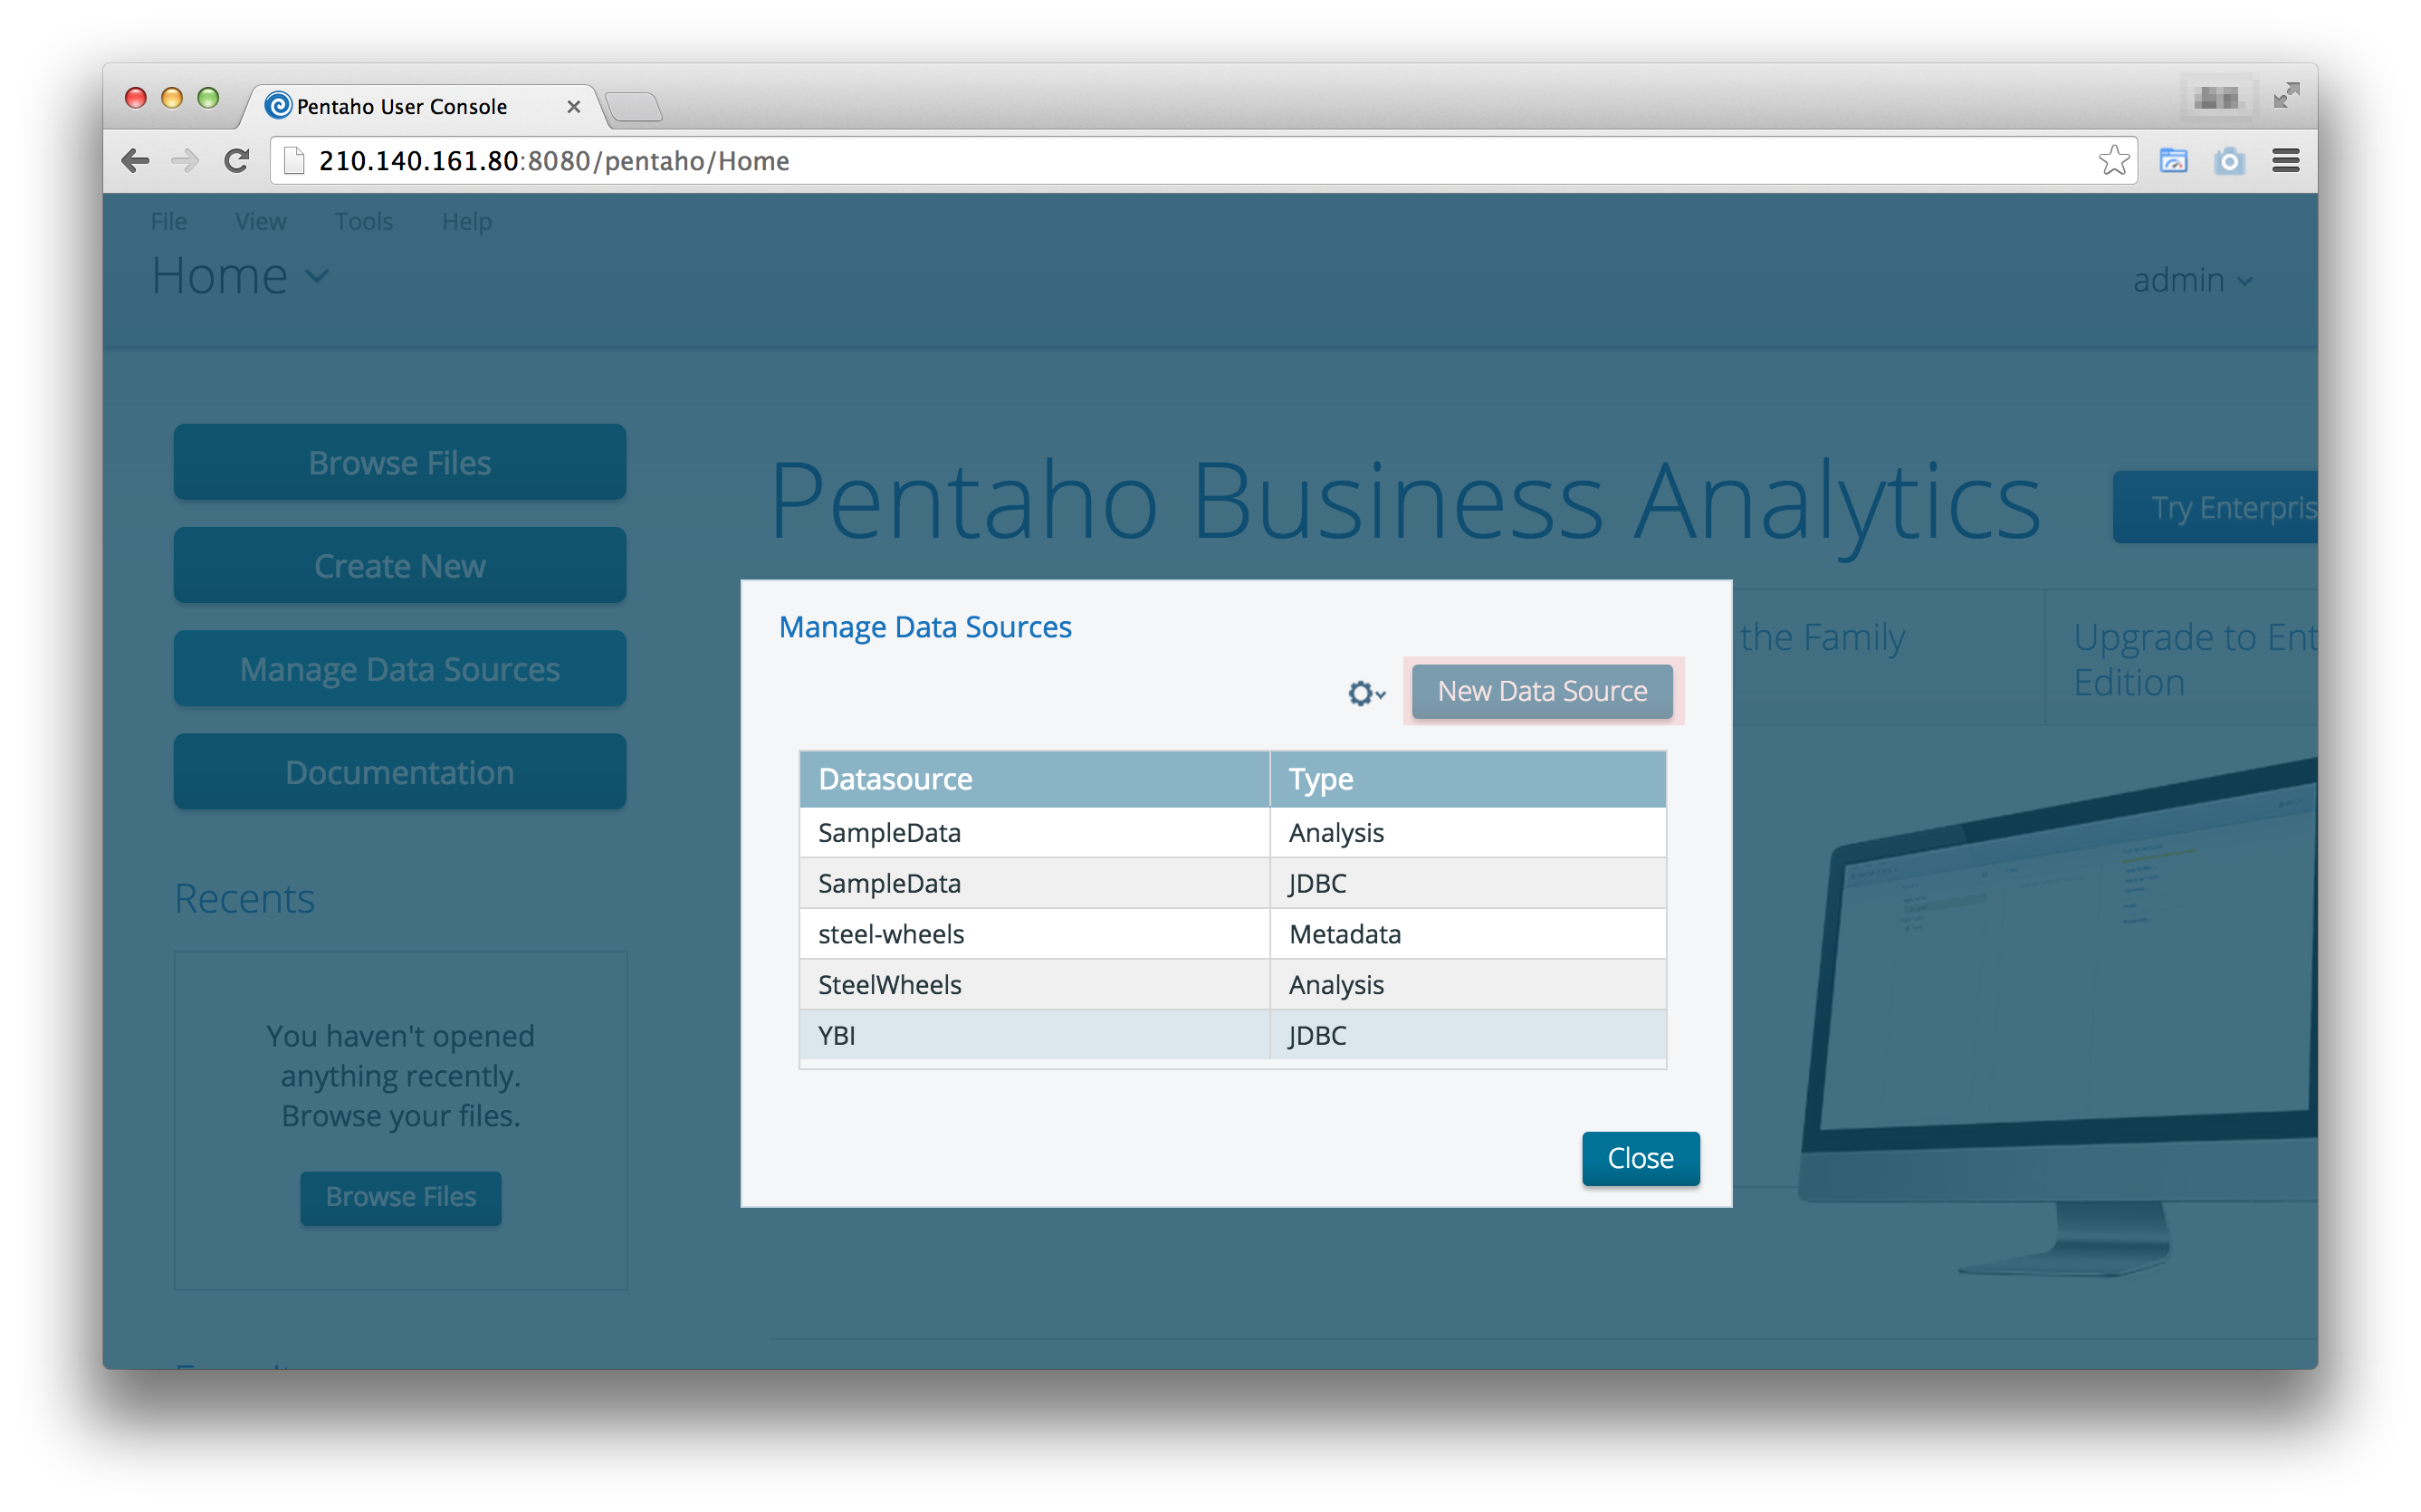 pentaho_data_source_4.png